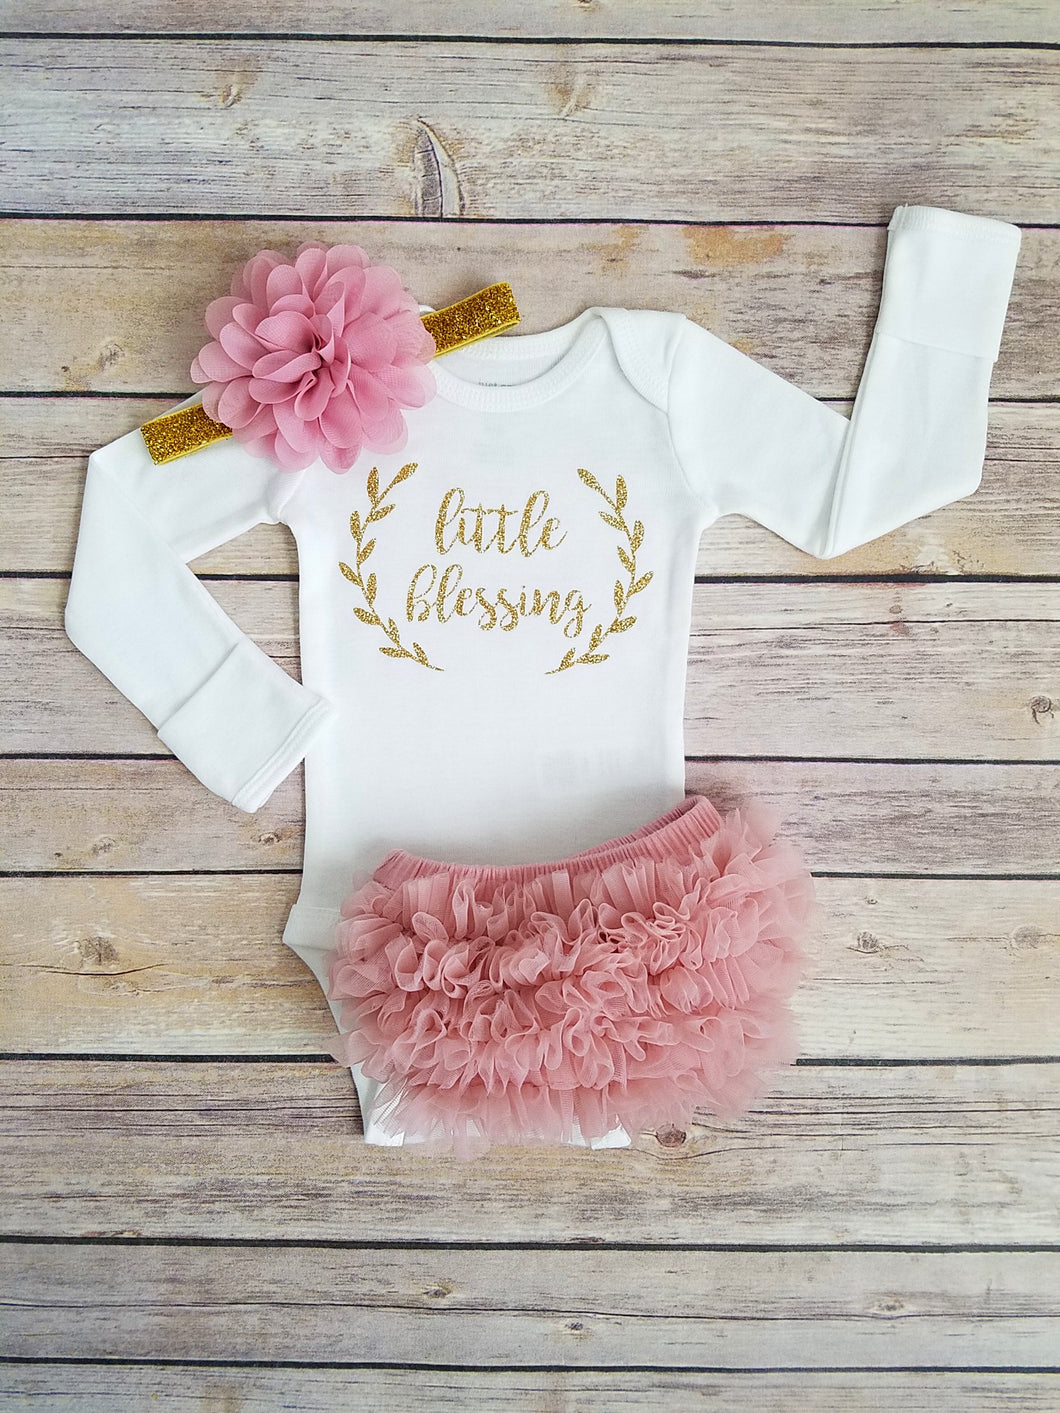 Dusty Pink And Gold Little Blessing Newborn Outfit Coming Home Outfit Girl - Adassa Rose